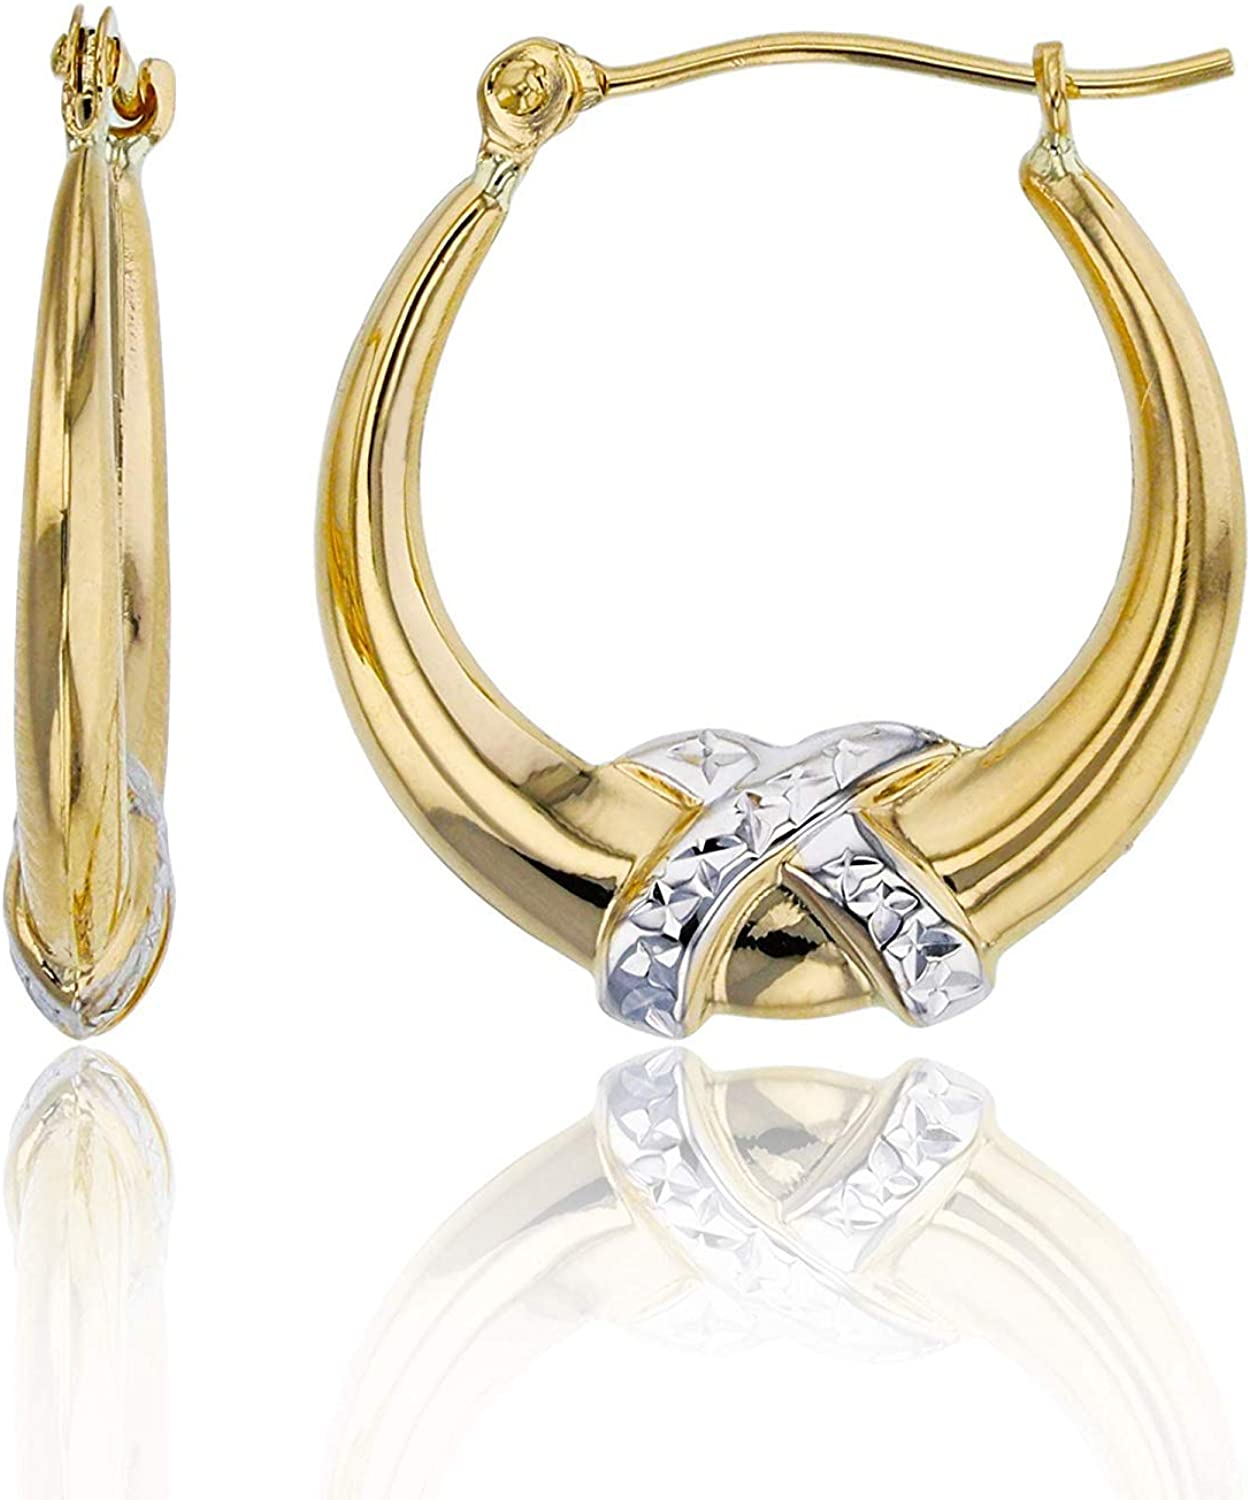 14K Yellow Gold 3mm Thick High Polished Knot Hoop Earrings with Hinged Clasp | Yellow Knot and White Knot Hoops | 3x18mm Hoop | Earrings For Sensitive Ears | Solid Gold Earrings For Women and Girls